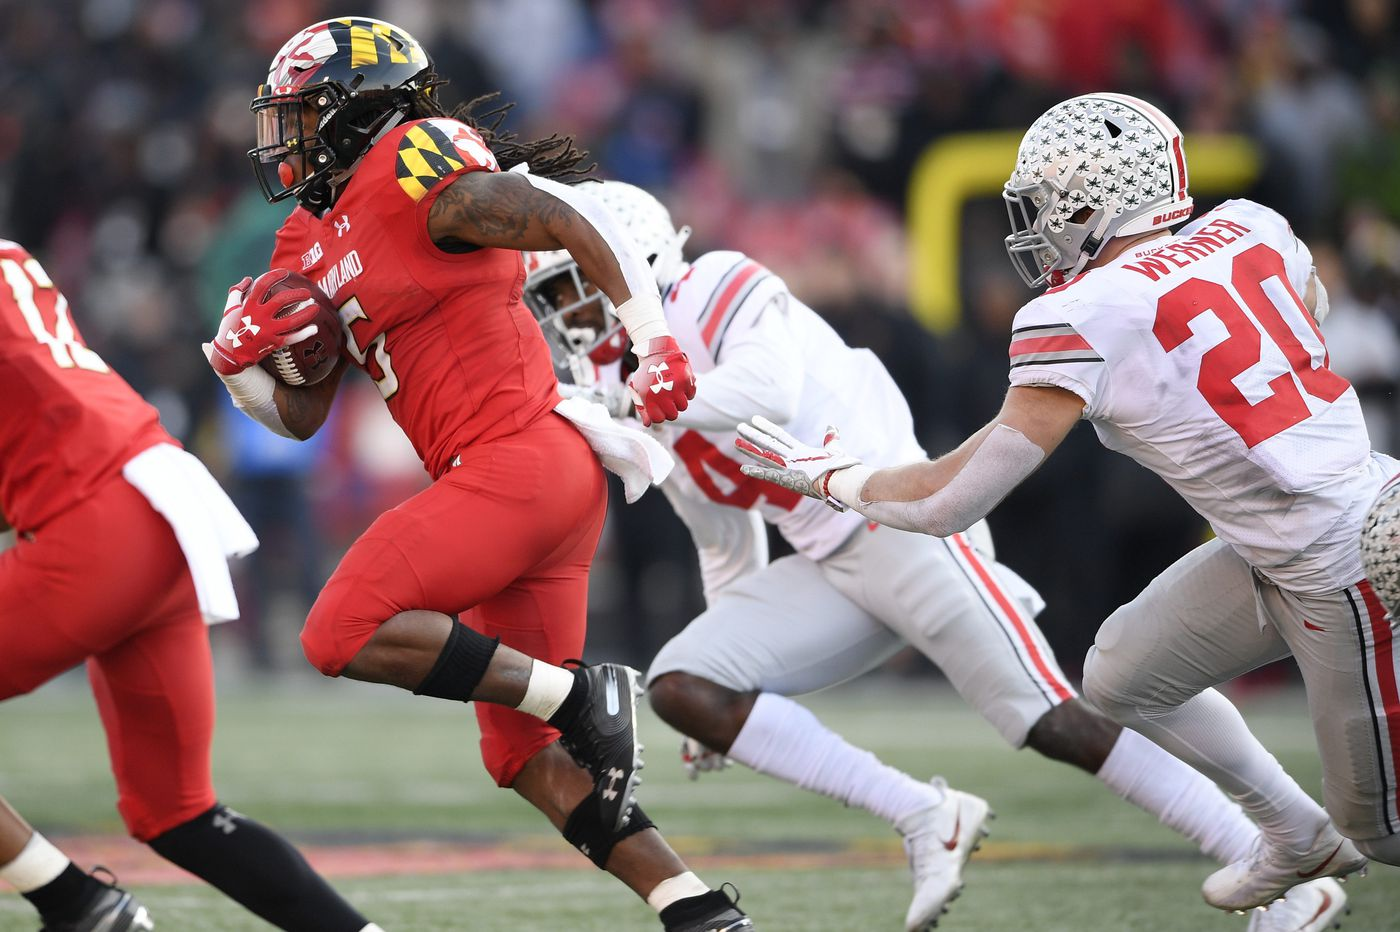 Maryland's tumultuous season comes down to finale against Penn State